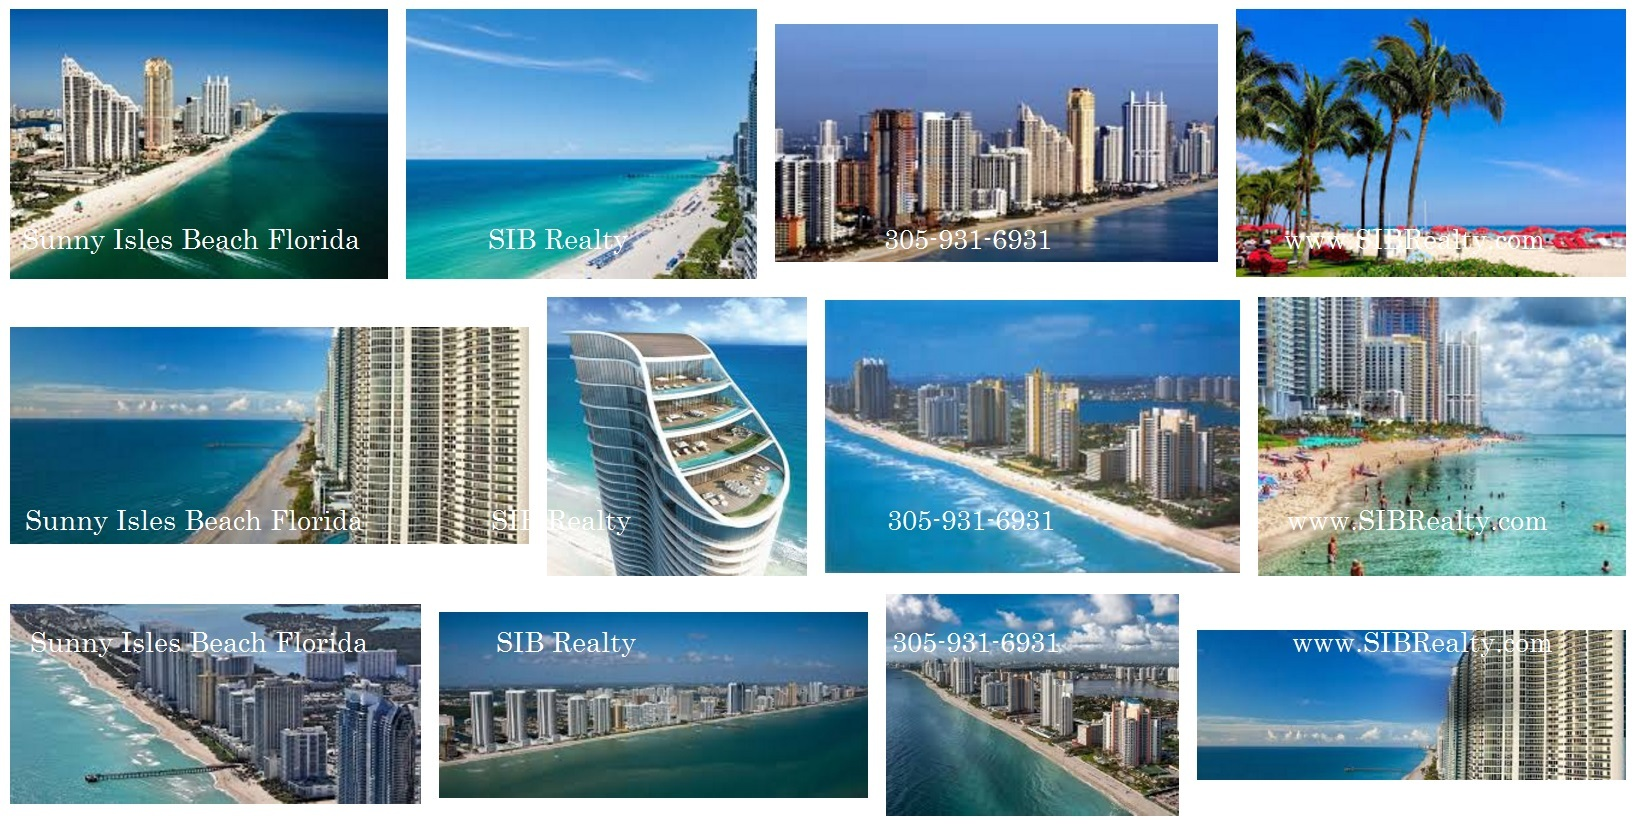 Sunny Isles Beach Condos for Sale with SIB